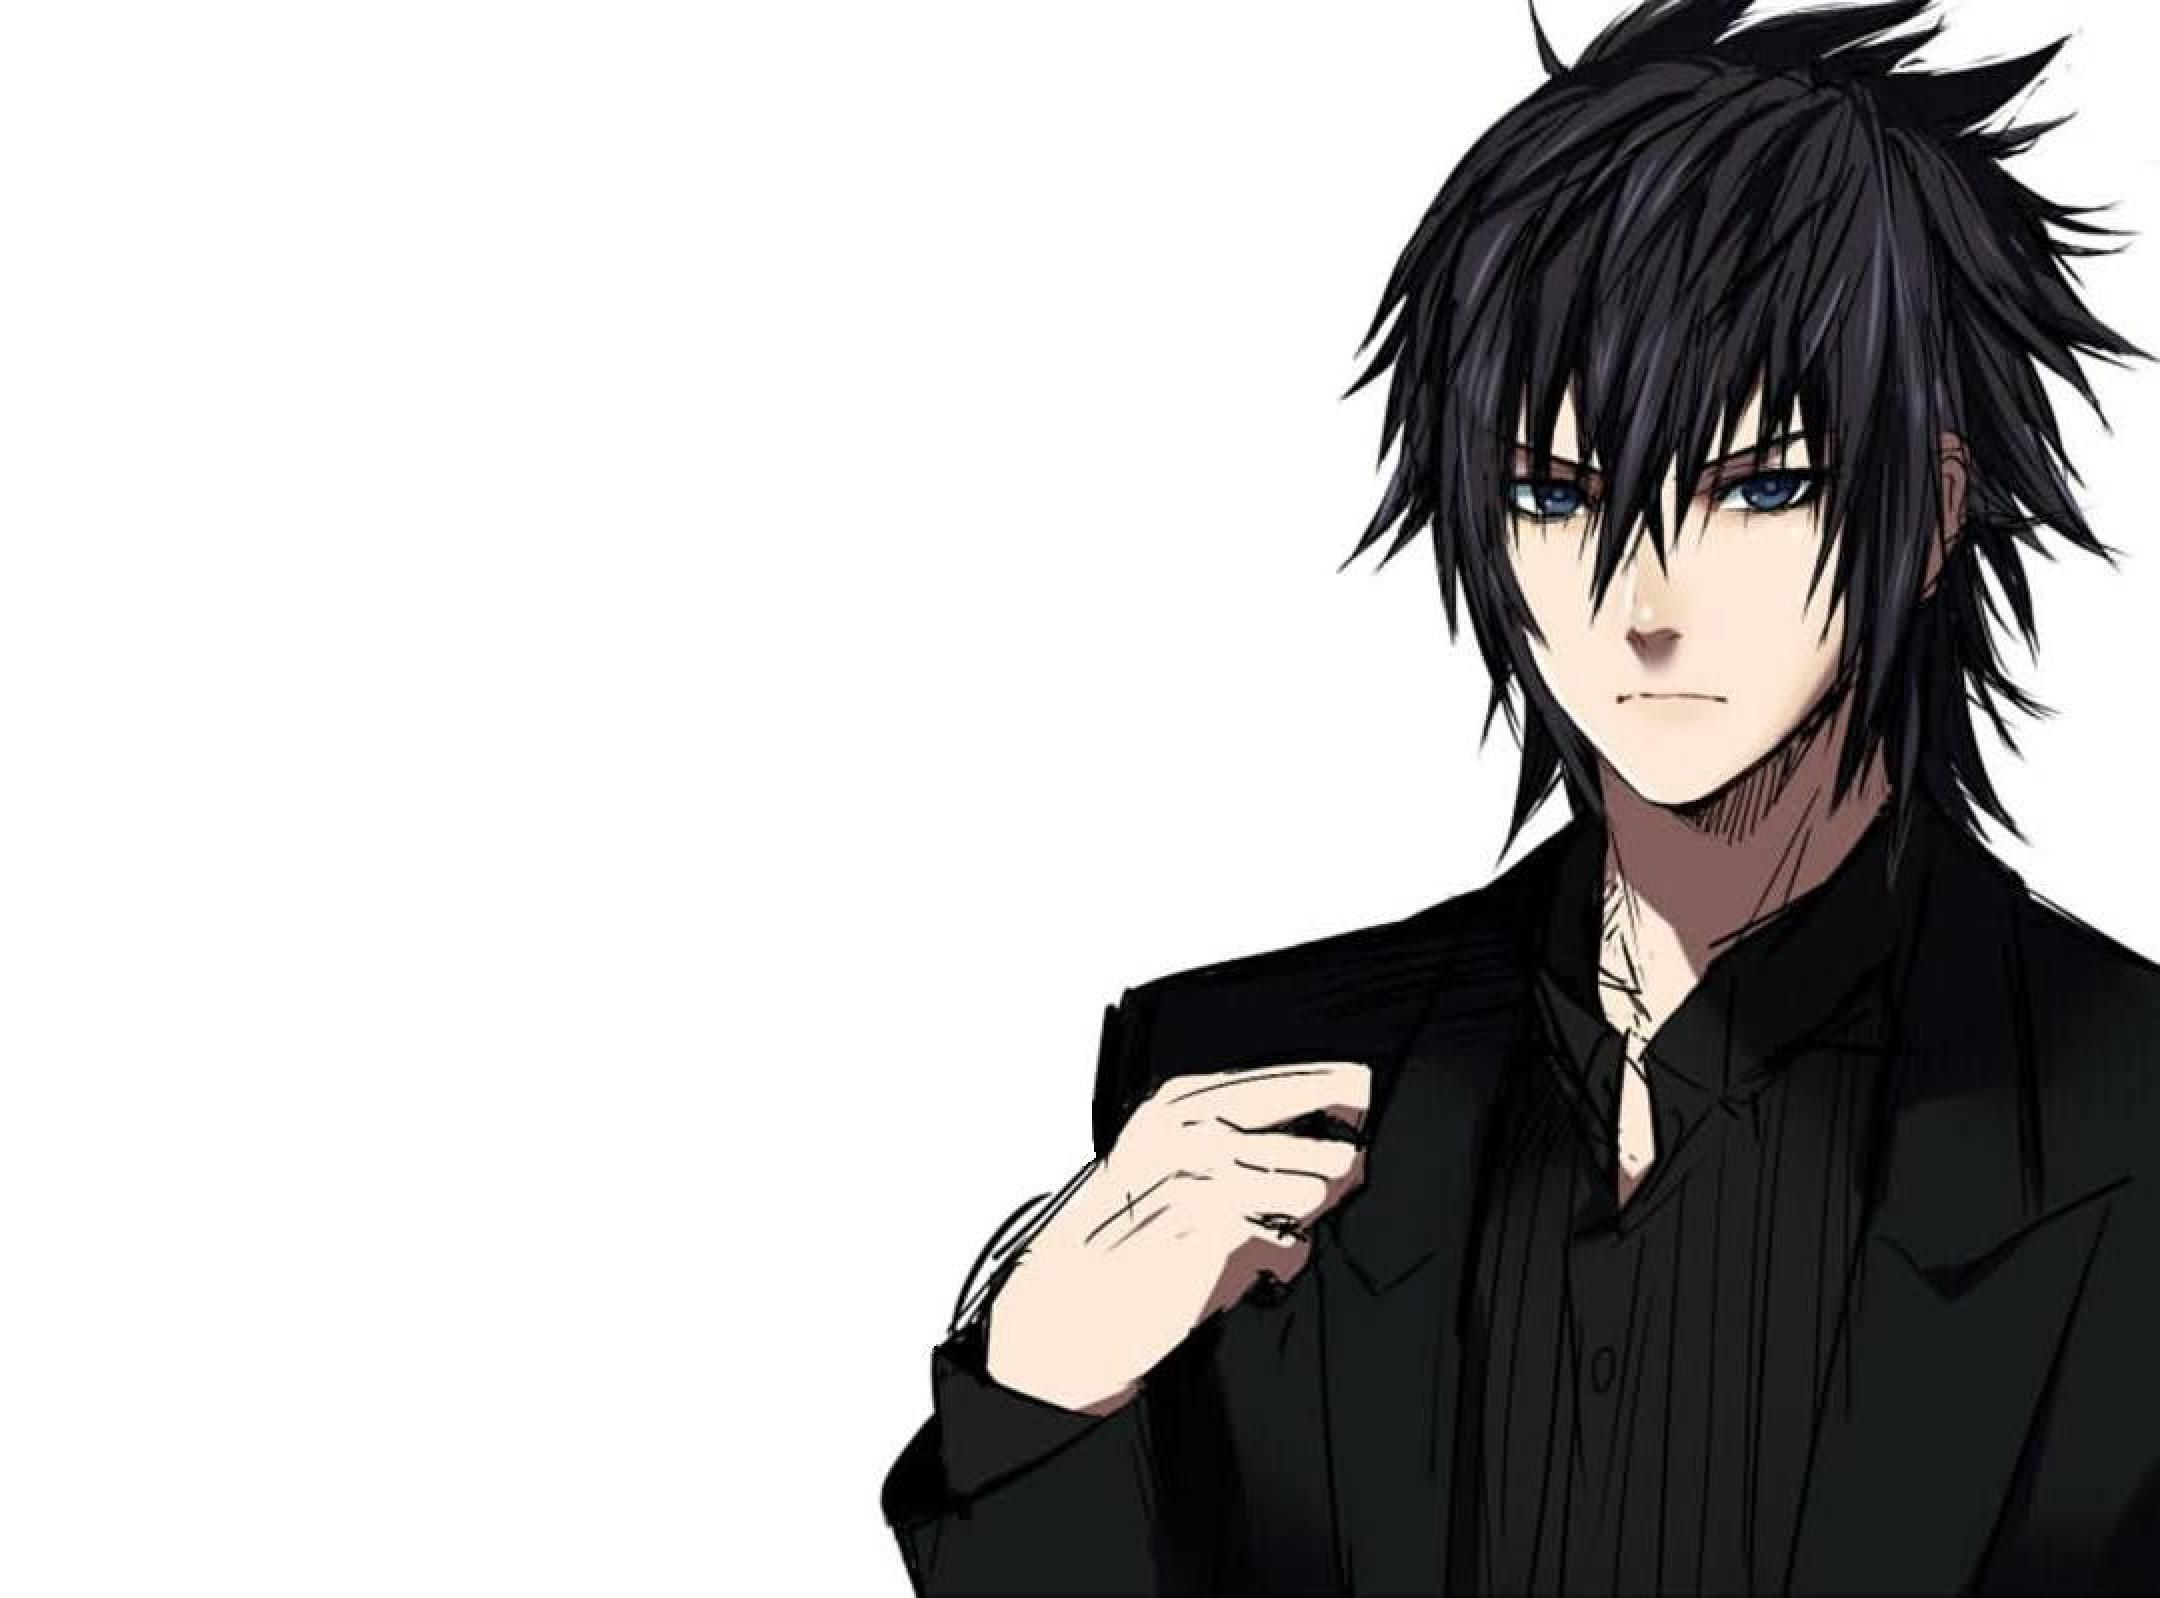 Pin By Onewayrick Orphanos On Anime Guys With Black Hair Black Hair Boy Anime Guy Blue Hair